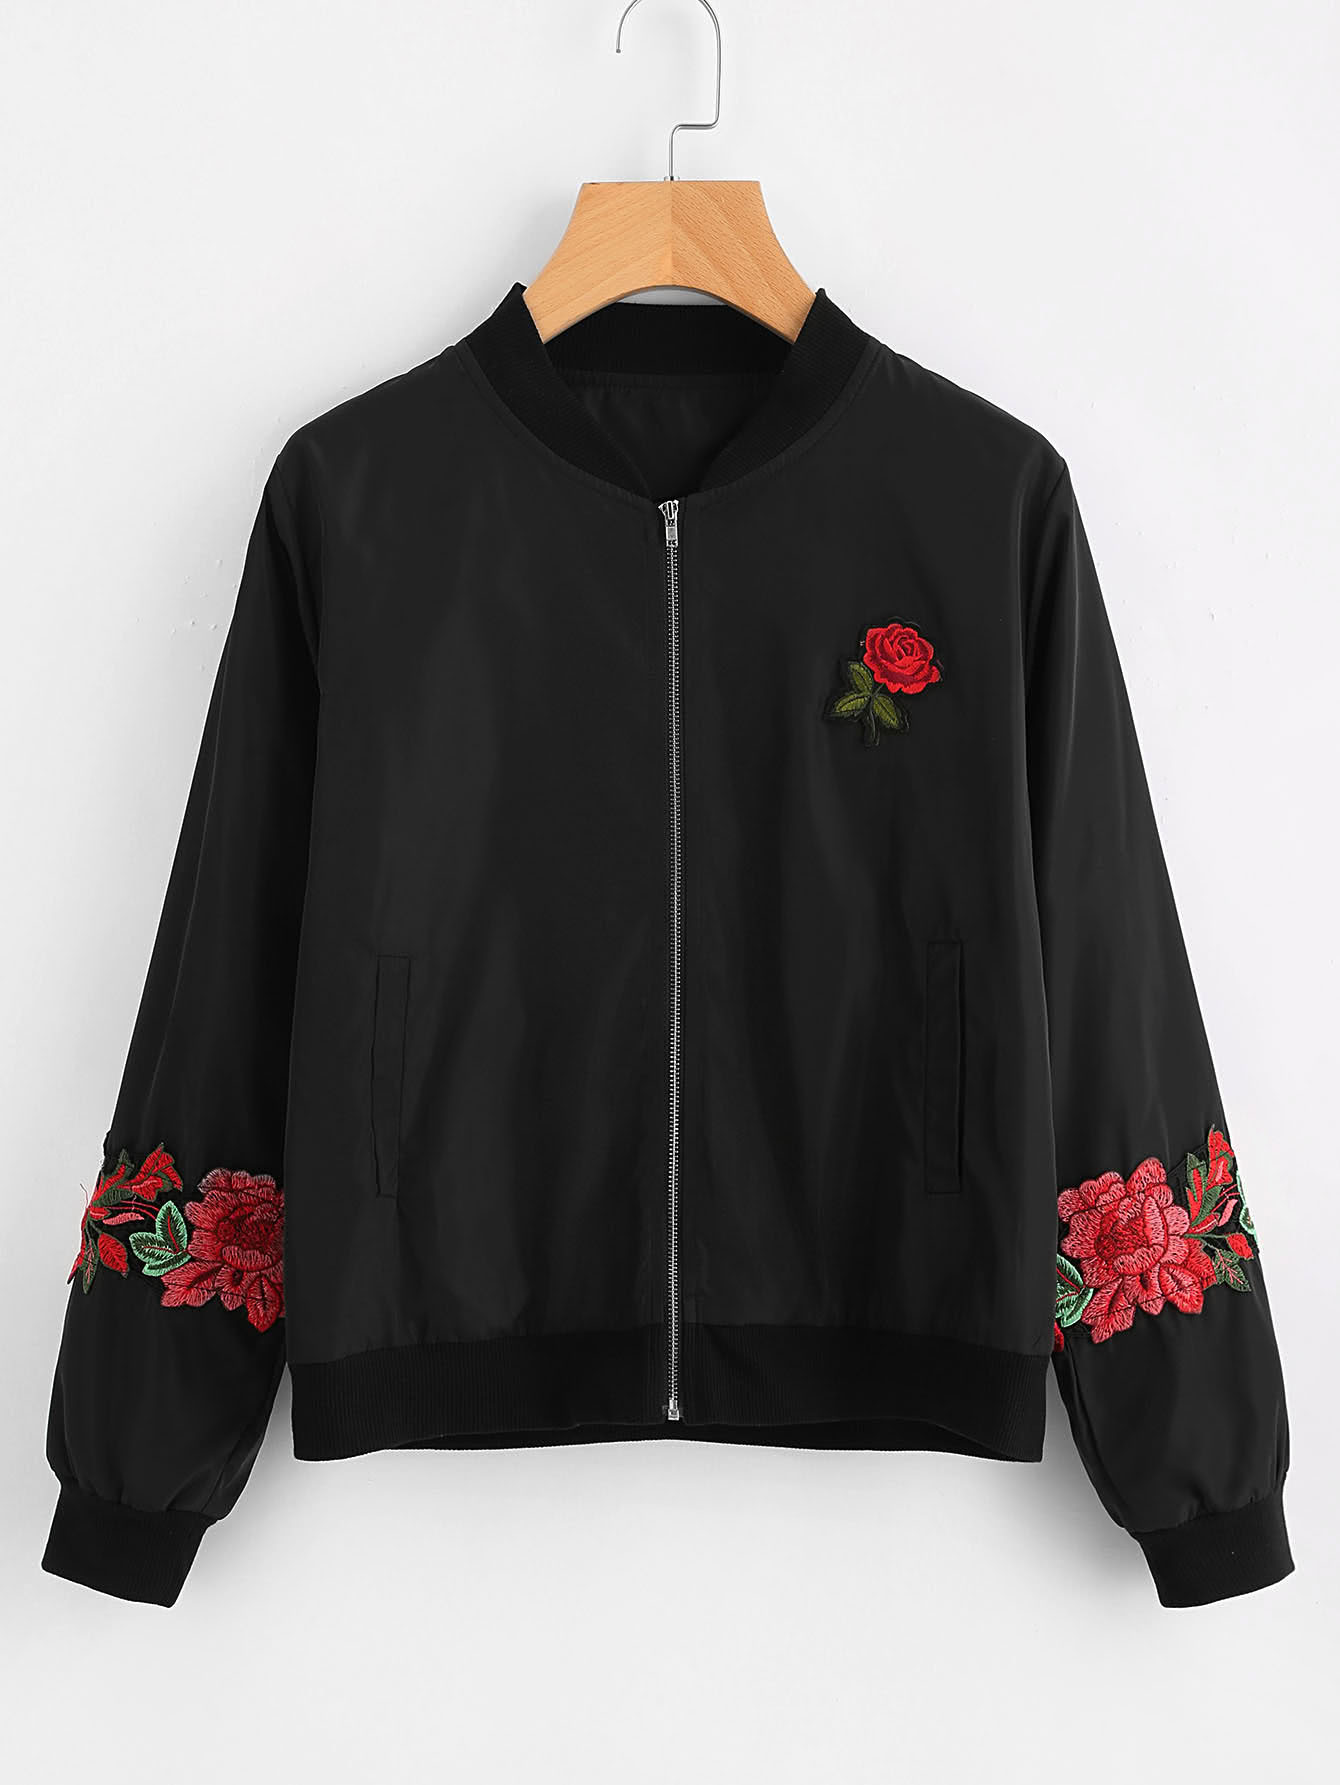 Embroidered rose patch zip up jacket shein sheinside